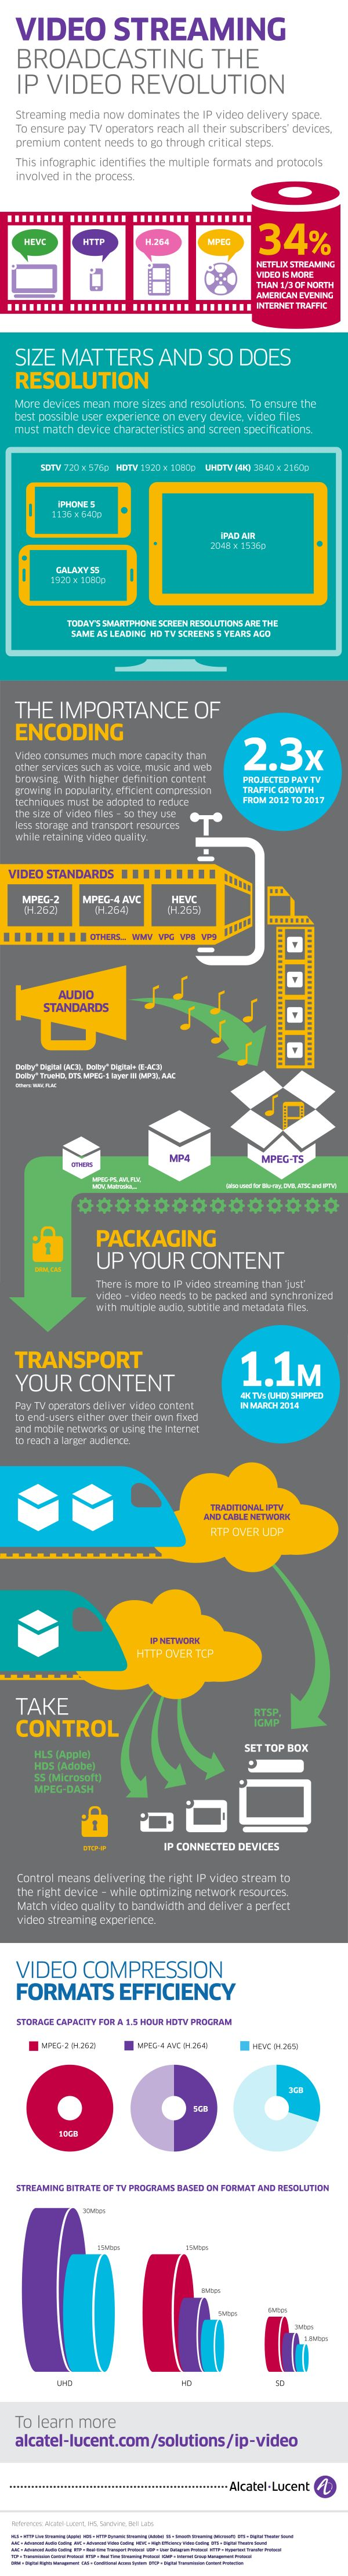 Video streaming infographic | Alcatel-Lucent